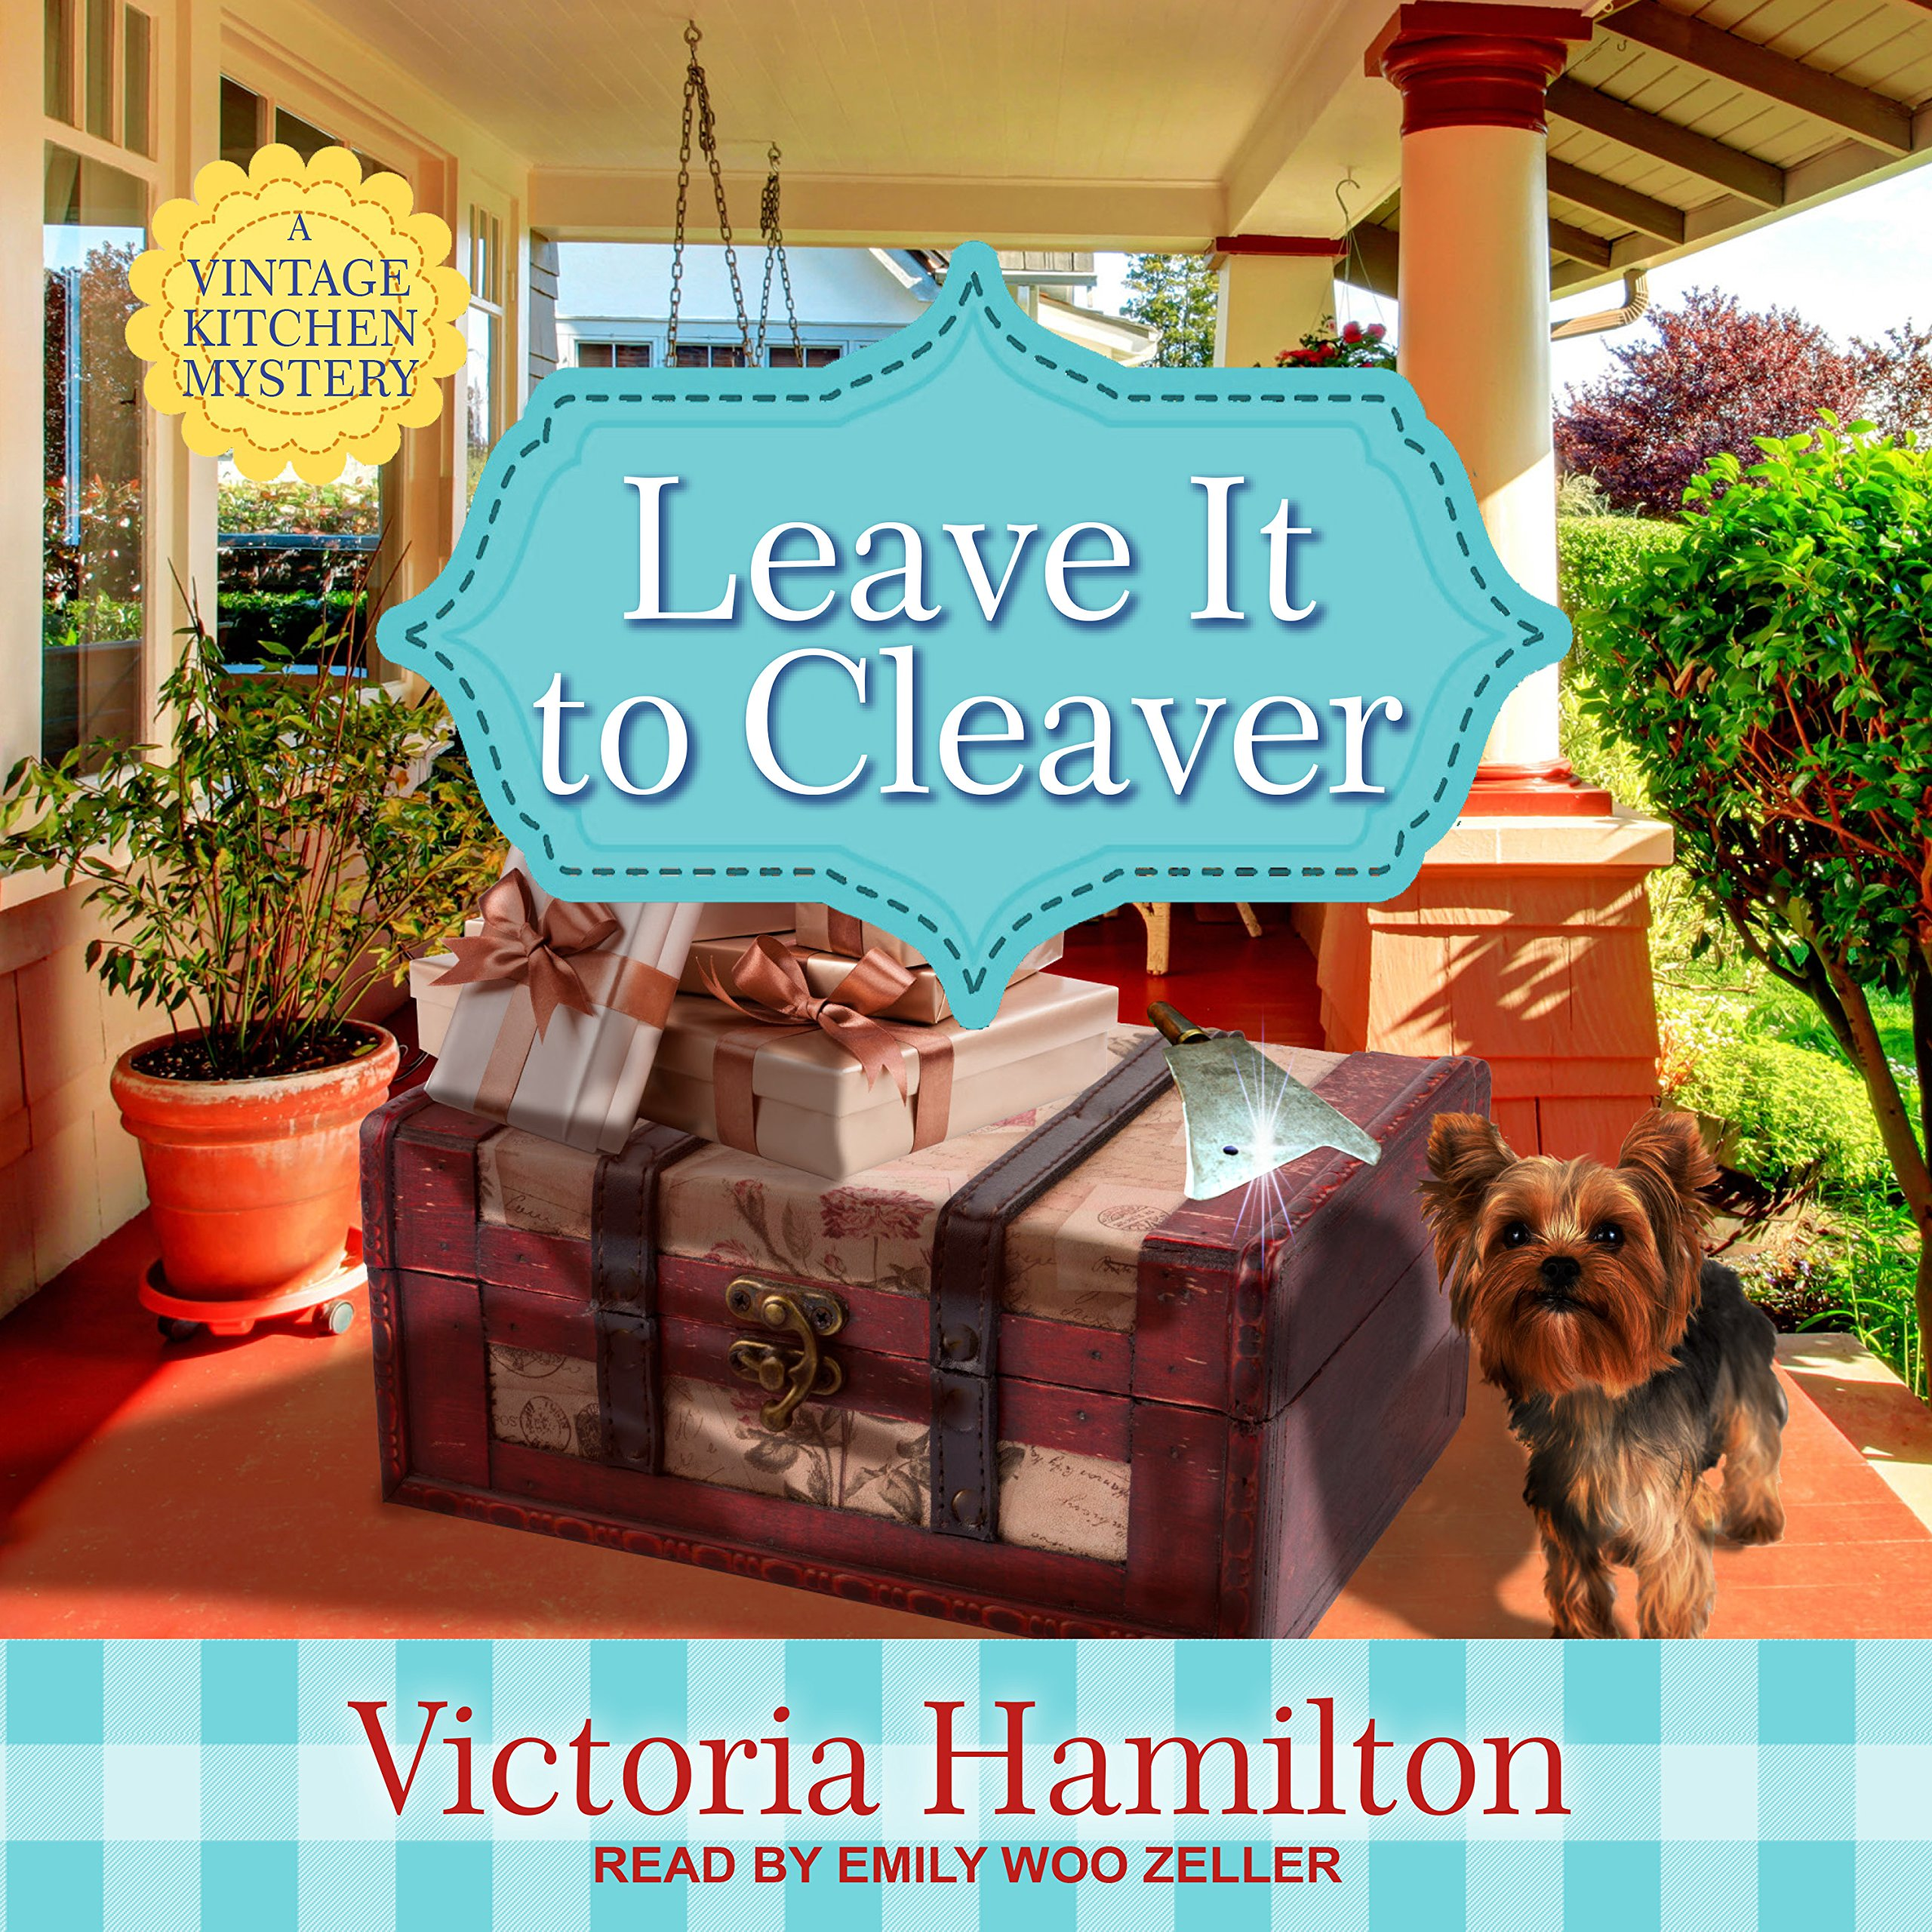 Leave It to Cleaver (Vintage Kitchen Mystery): Victoria Hamilton ...